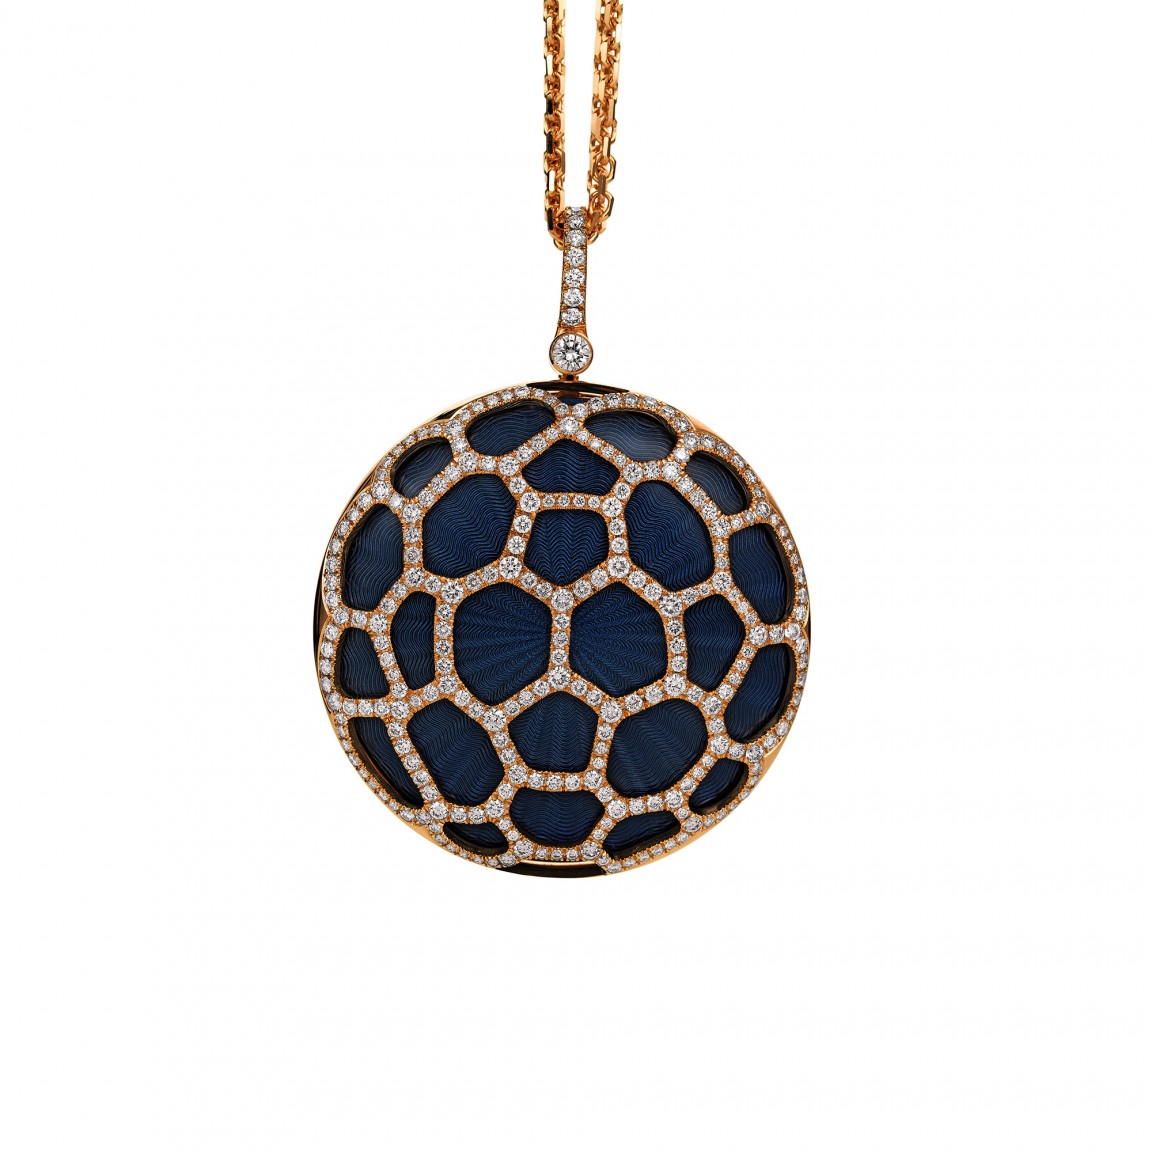 Victor Mayer Constant Pendant Necklace